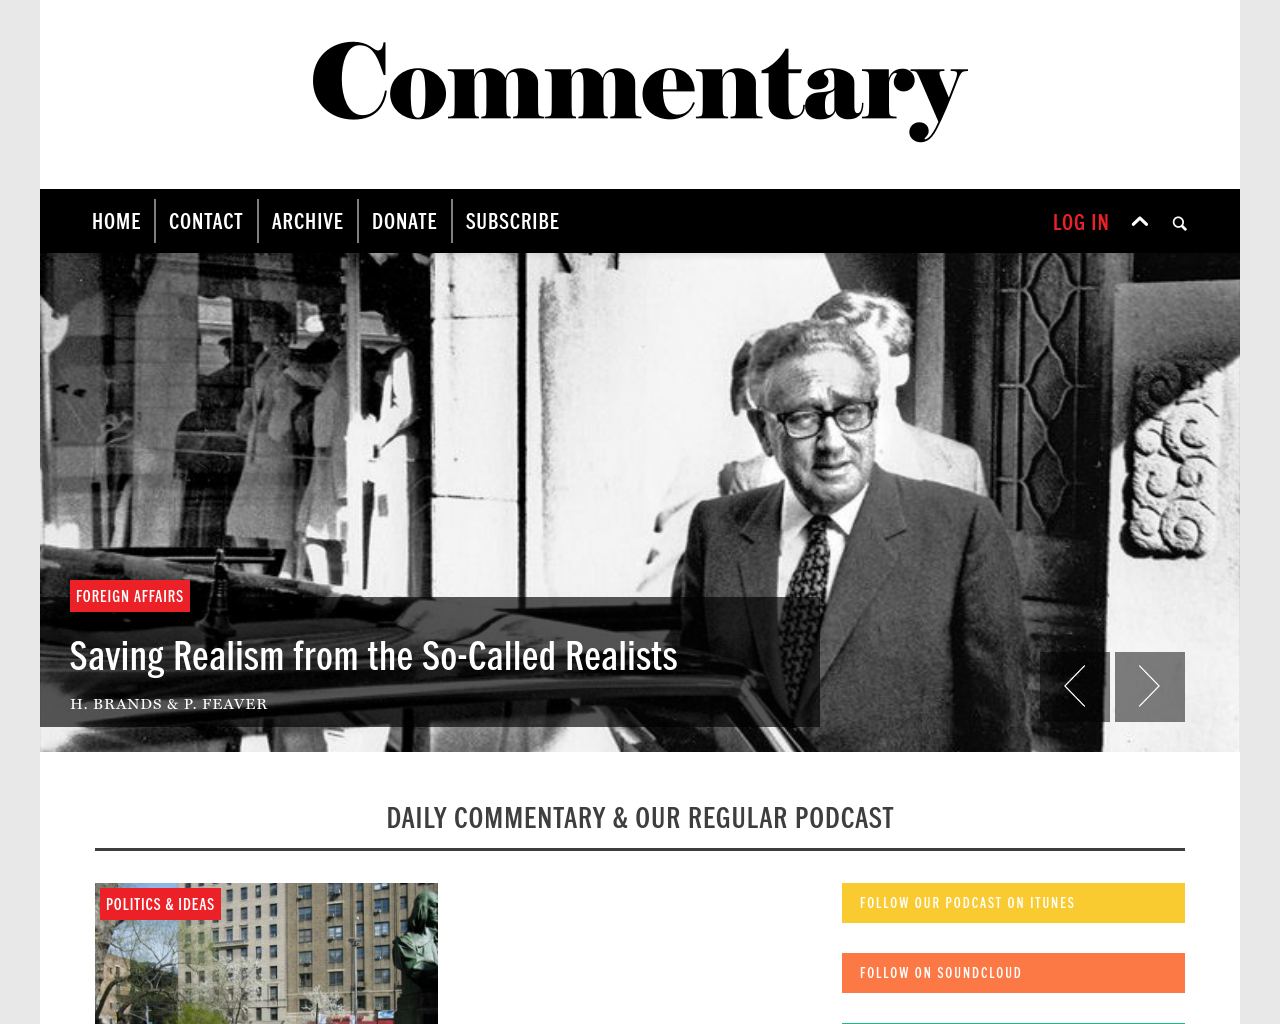 Commentary-Magazine-Advertising-Reviews-Pricing